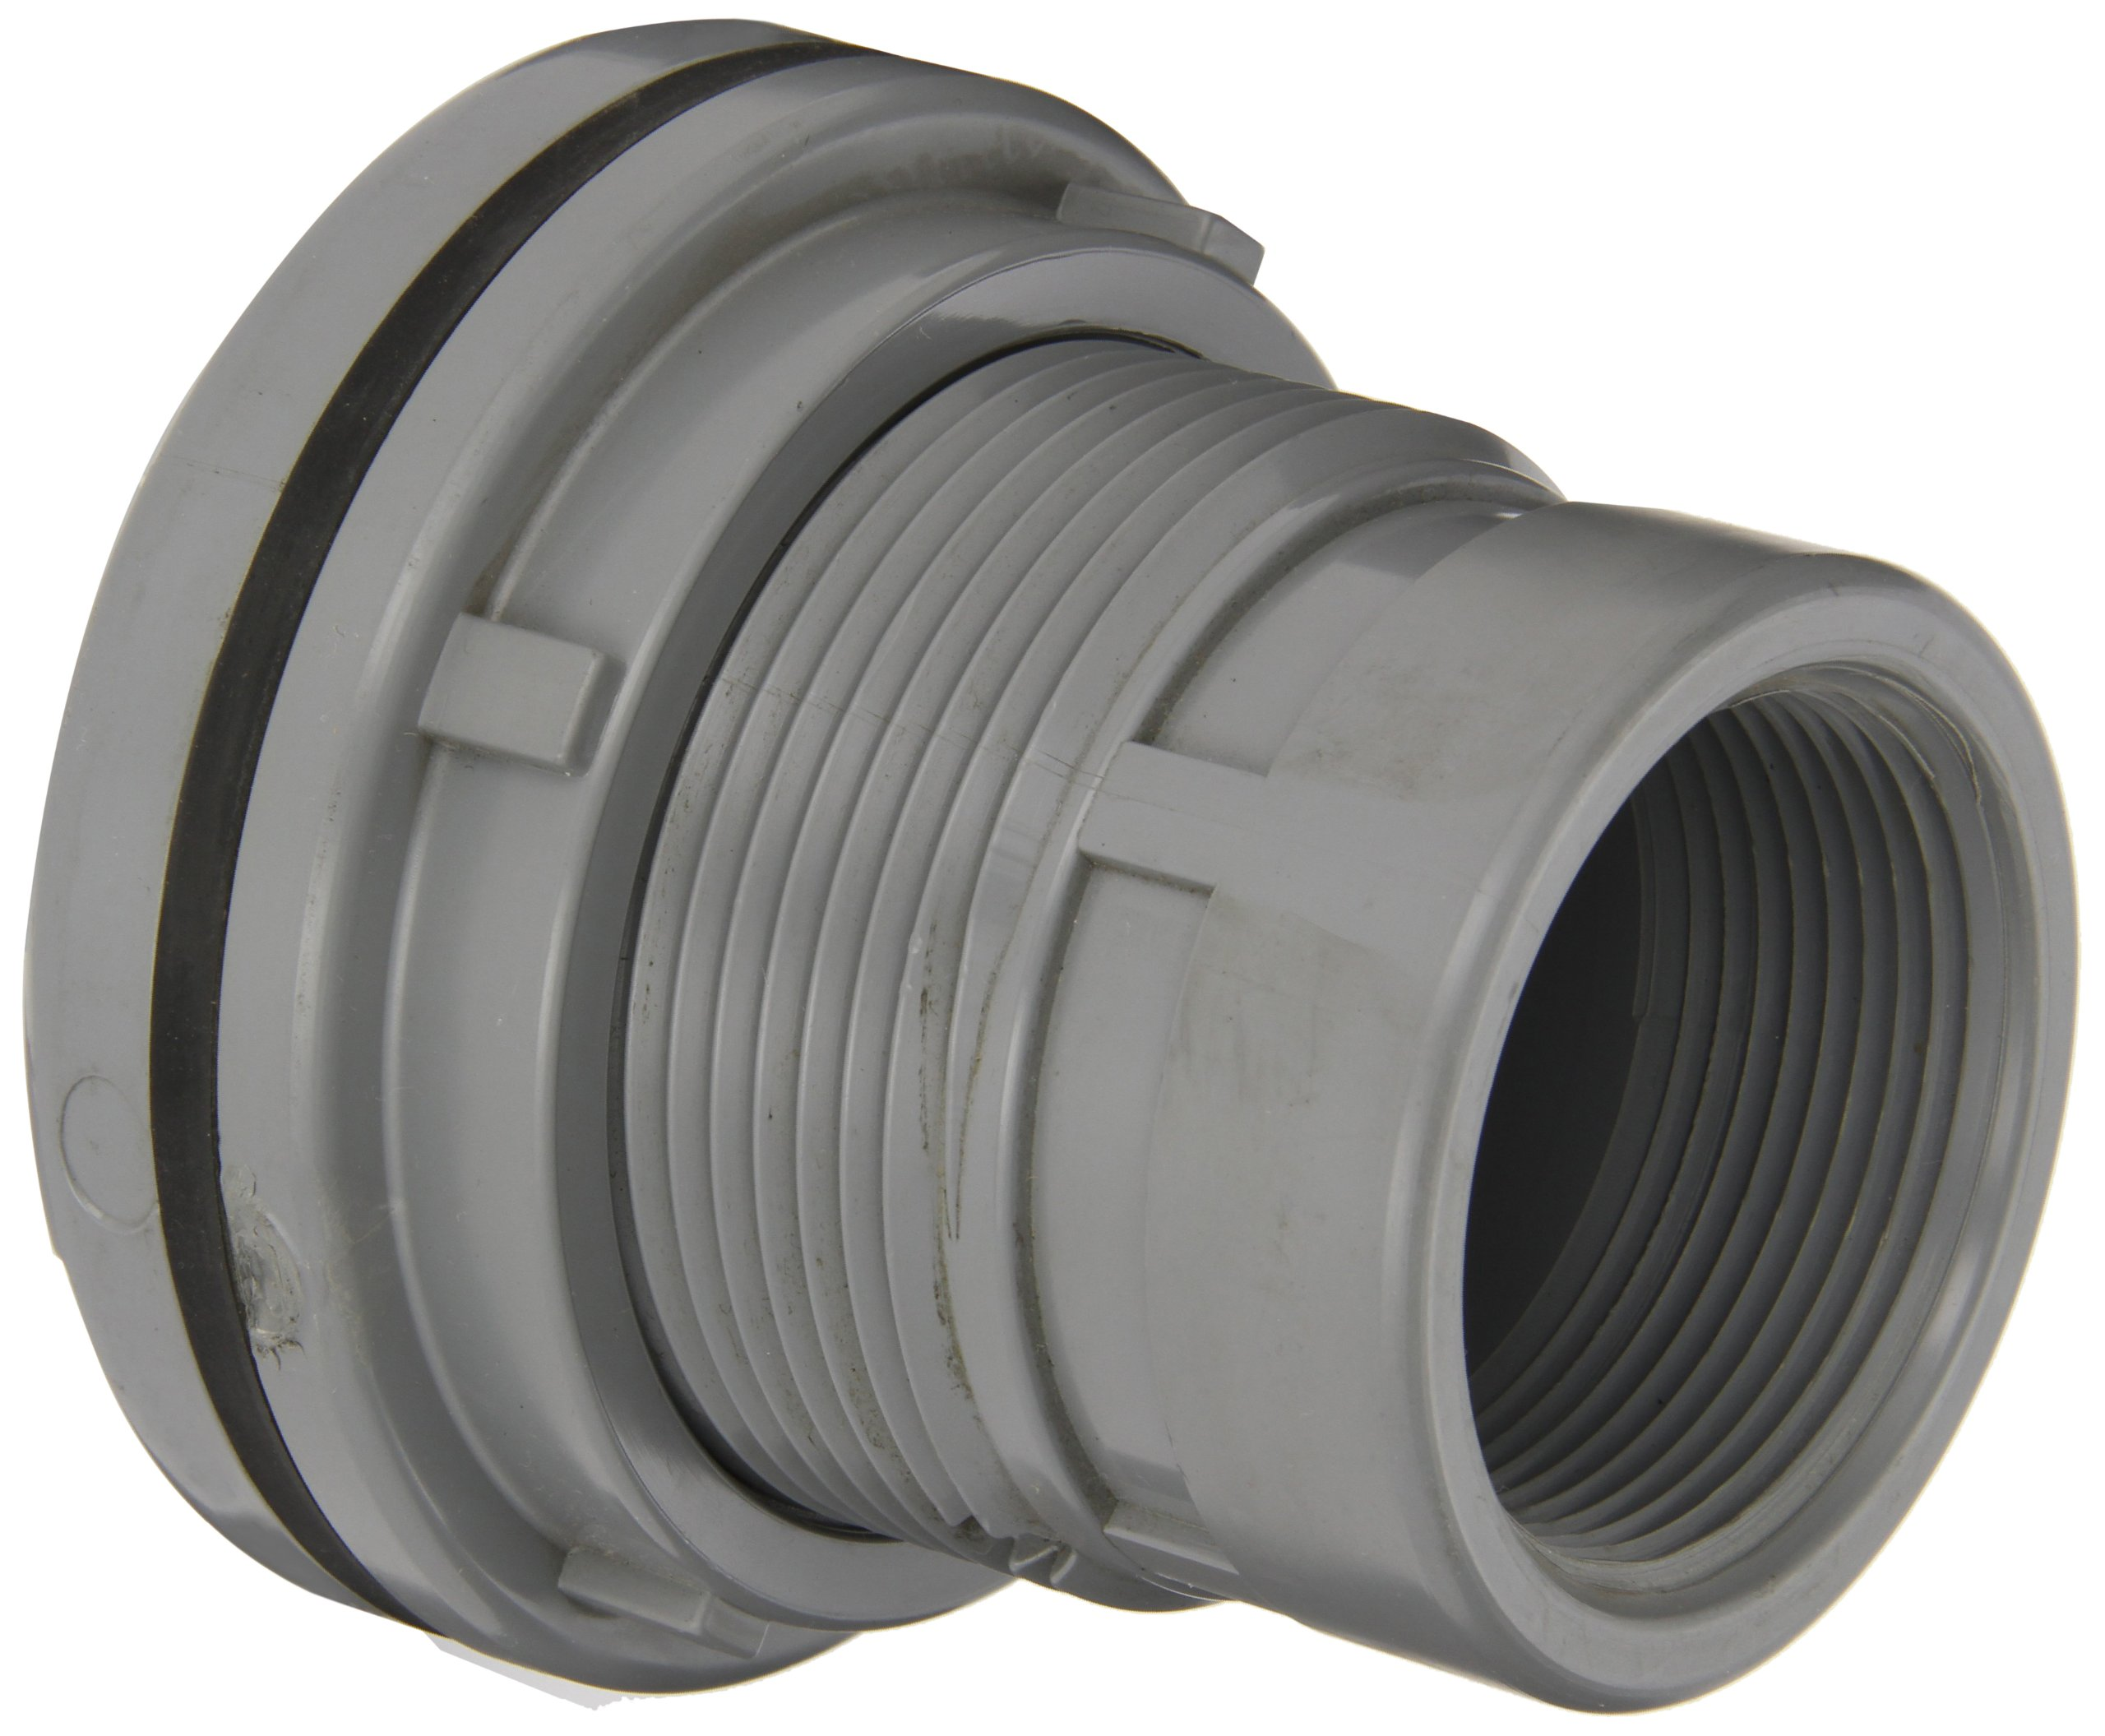 Spears 8172-C Series CPVC Bulkhead Tank Adapter, Schedule 80, Gray, 2-1/2'' NPT Female by Spears Manufacturing